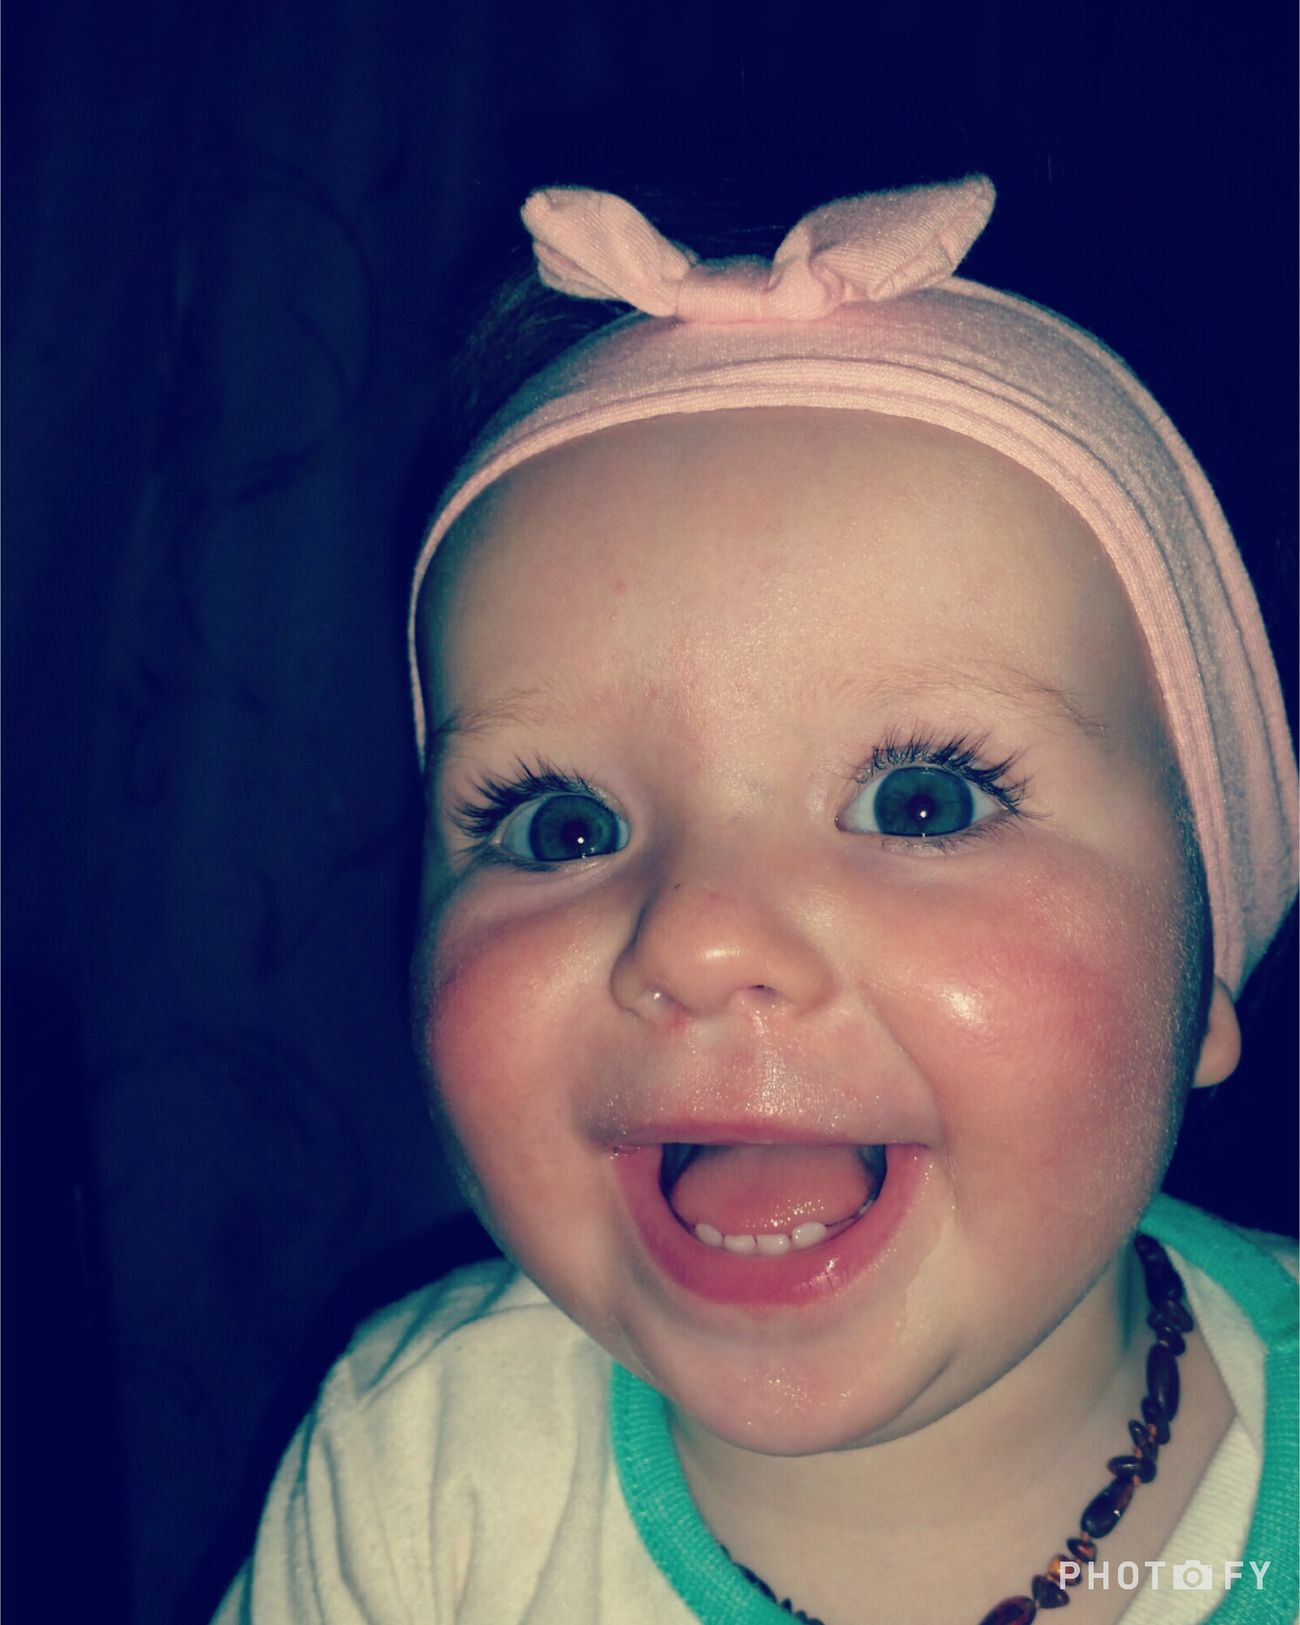 Beautiful Smile My Baby Girl Love You Laughing Out Loud Headband